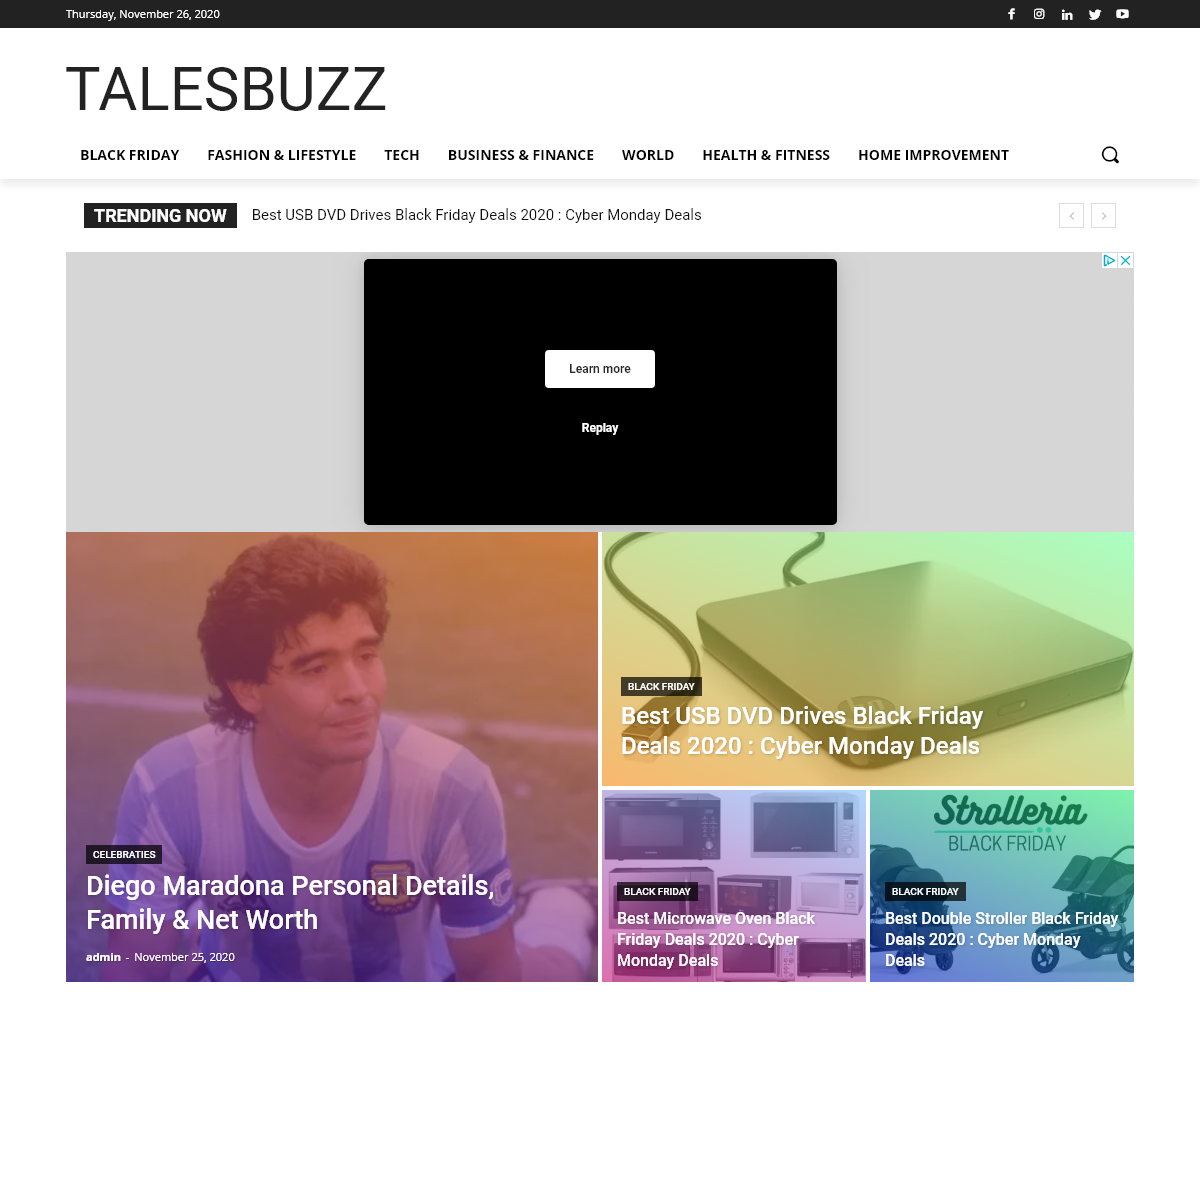 Talesbuzz - Savour The Flavour Of interesting News Stories